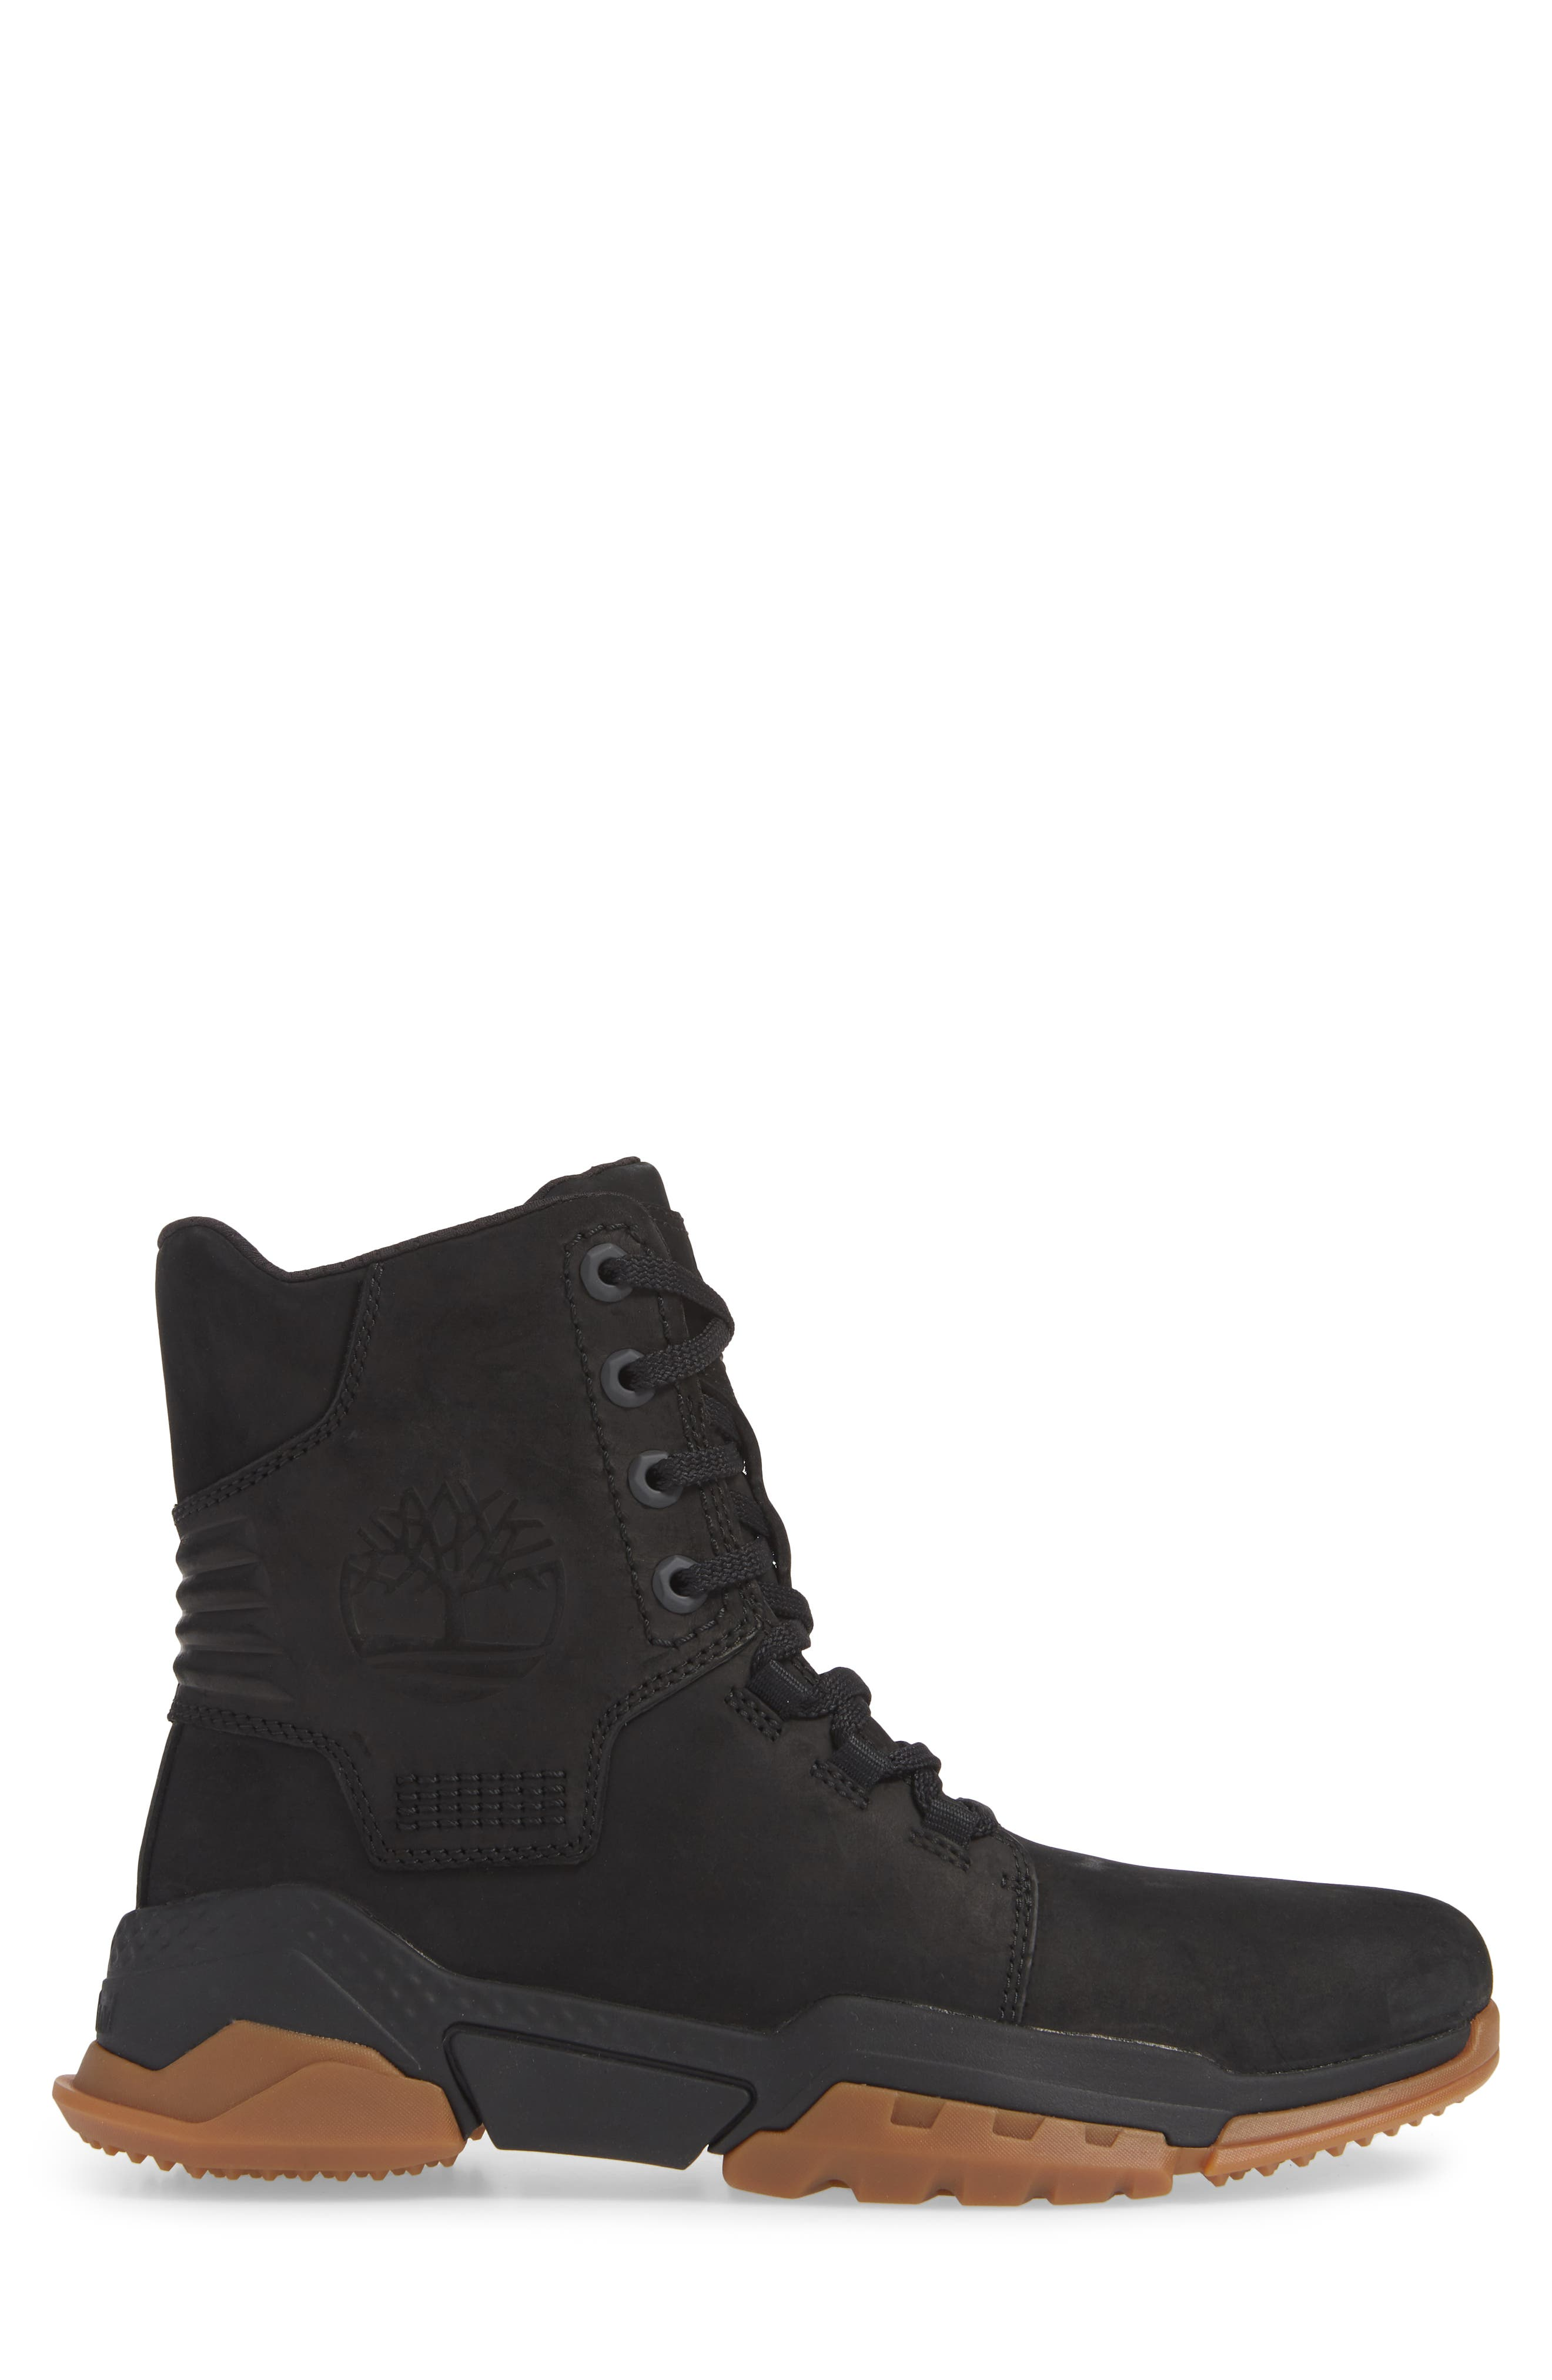 TIMBERLAND, City Force Reveal Plain Toe Boot, Alternate thumbnail 3, color, BLACK LEATHER/ NEOPRENE